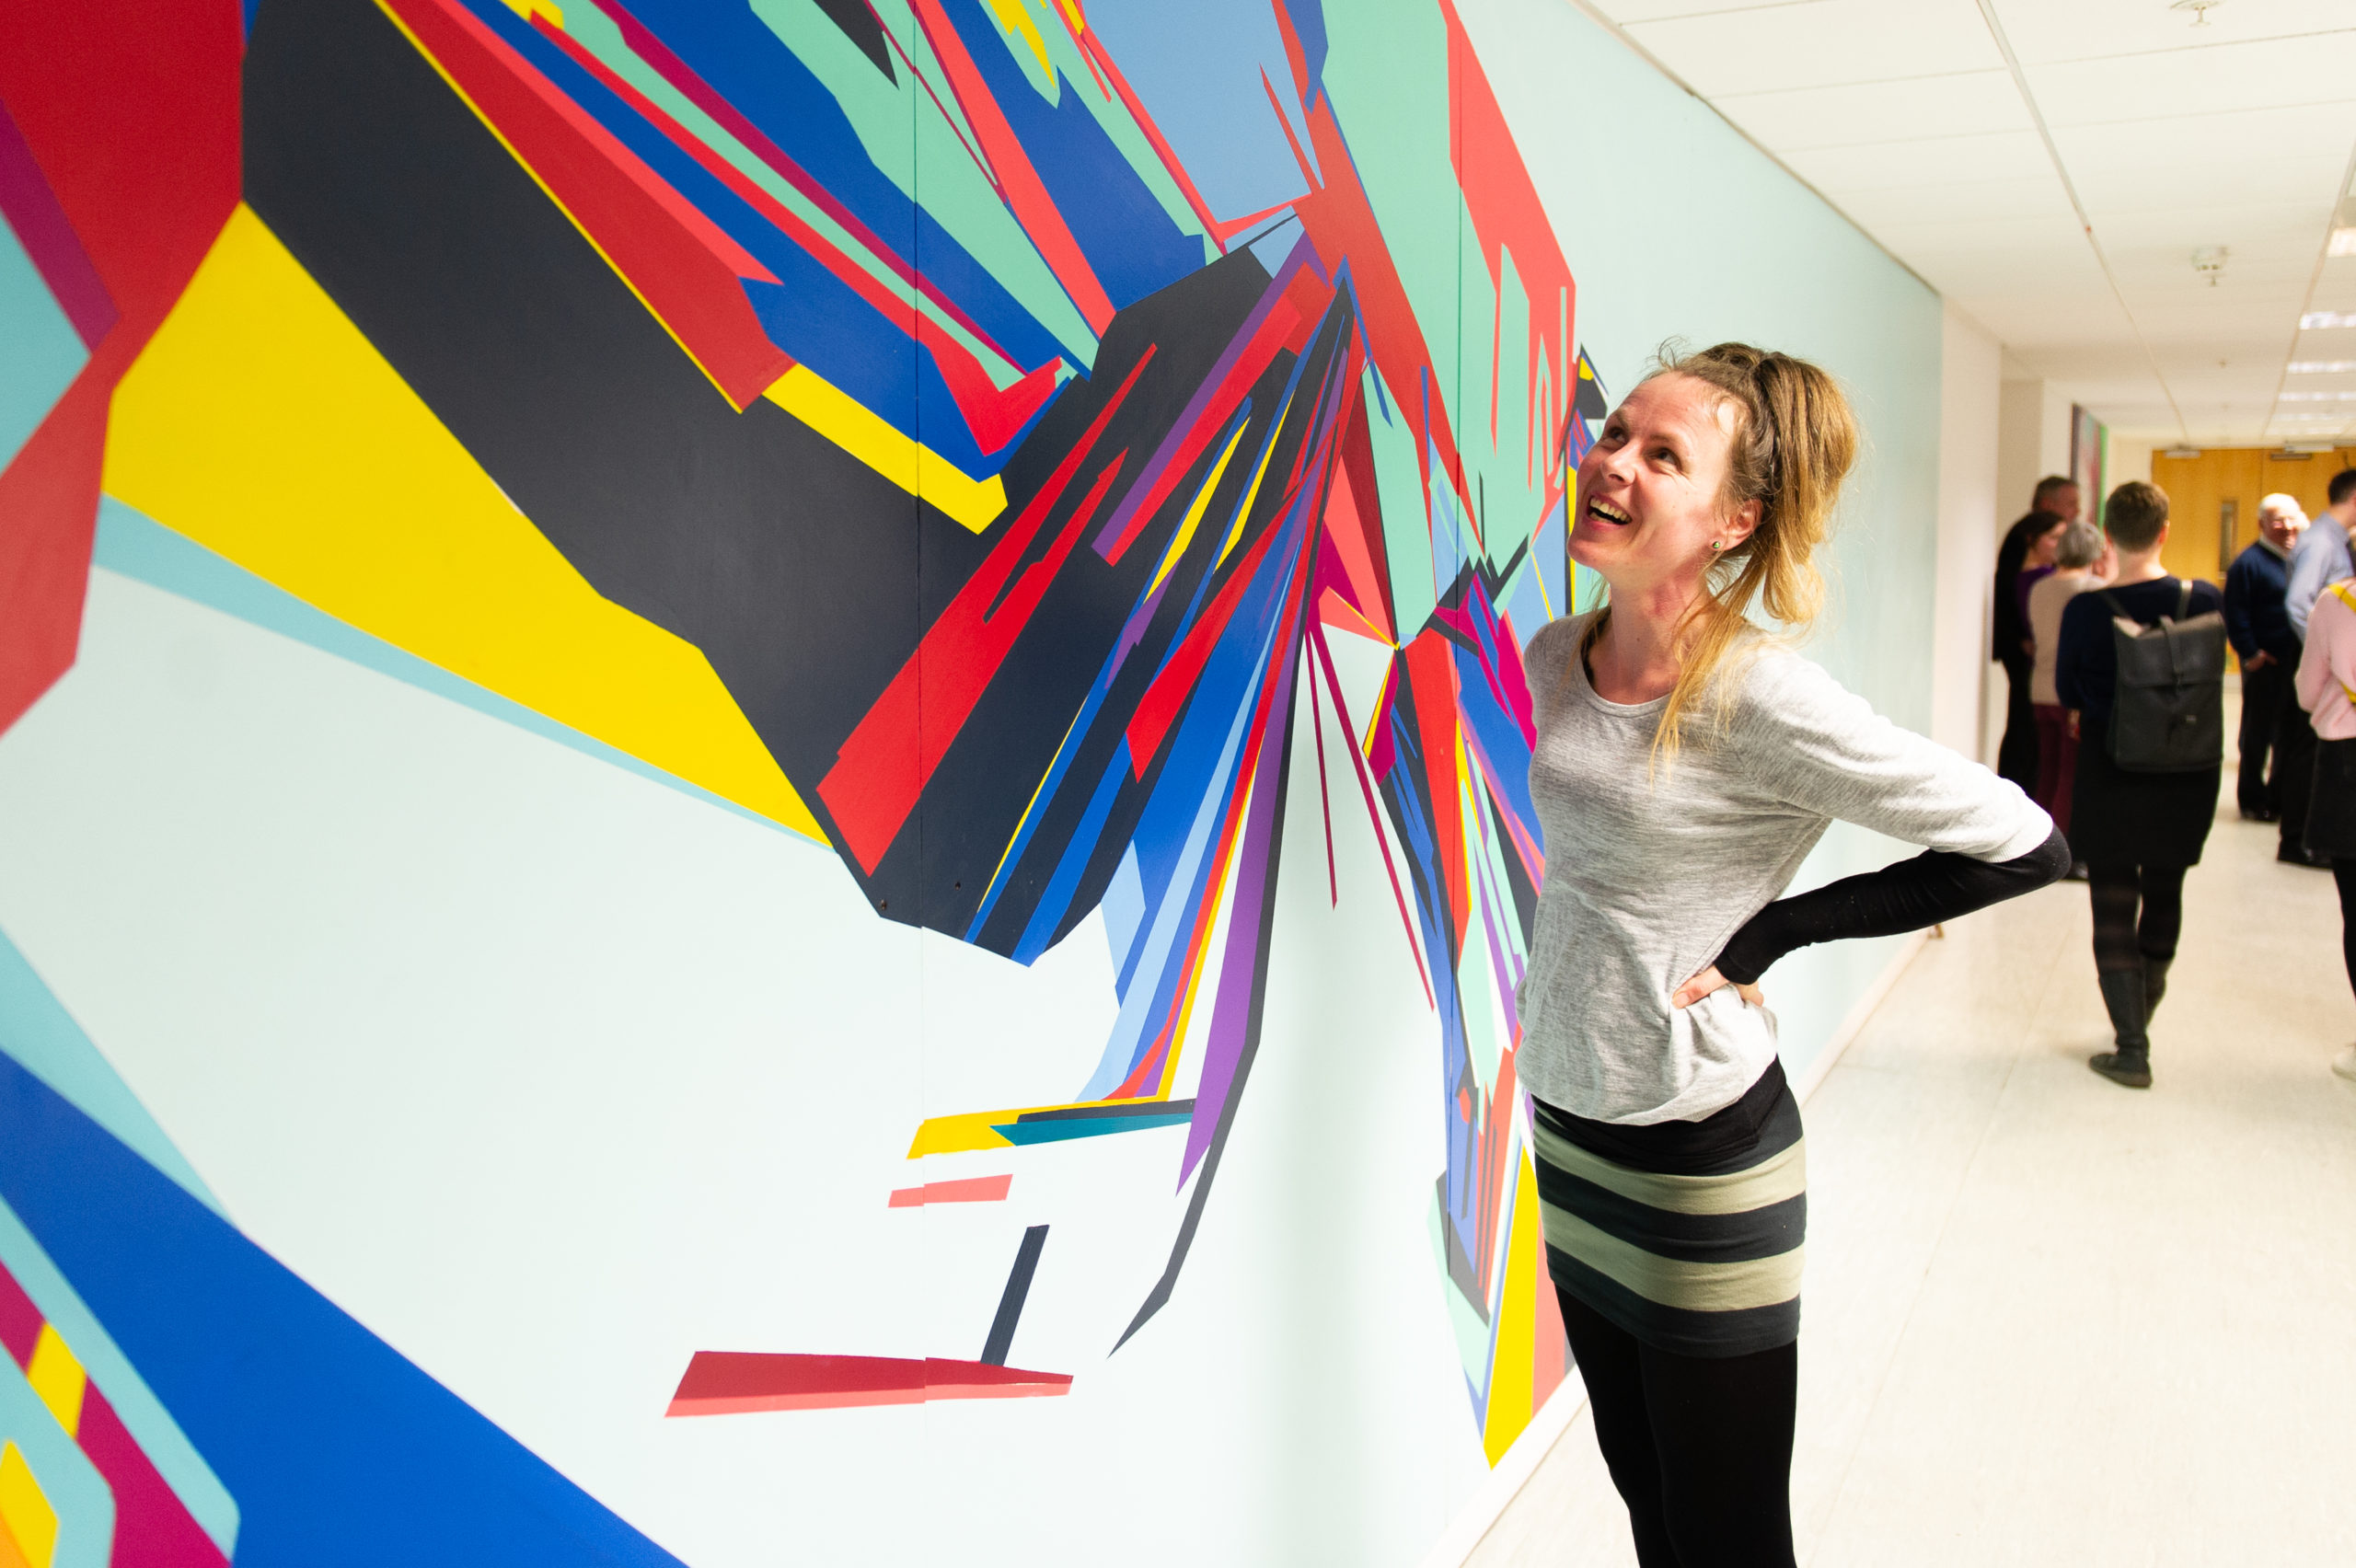 Artist Joanna Craig and her artwork, part of a project to illustrate the story of NCR in Dundee.